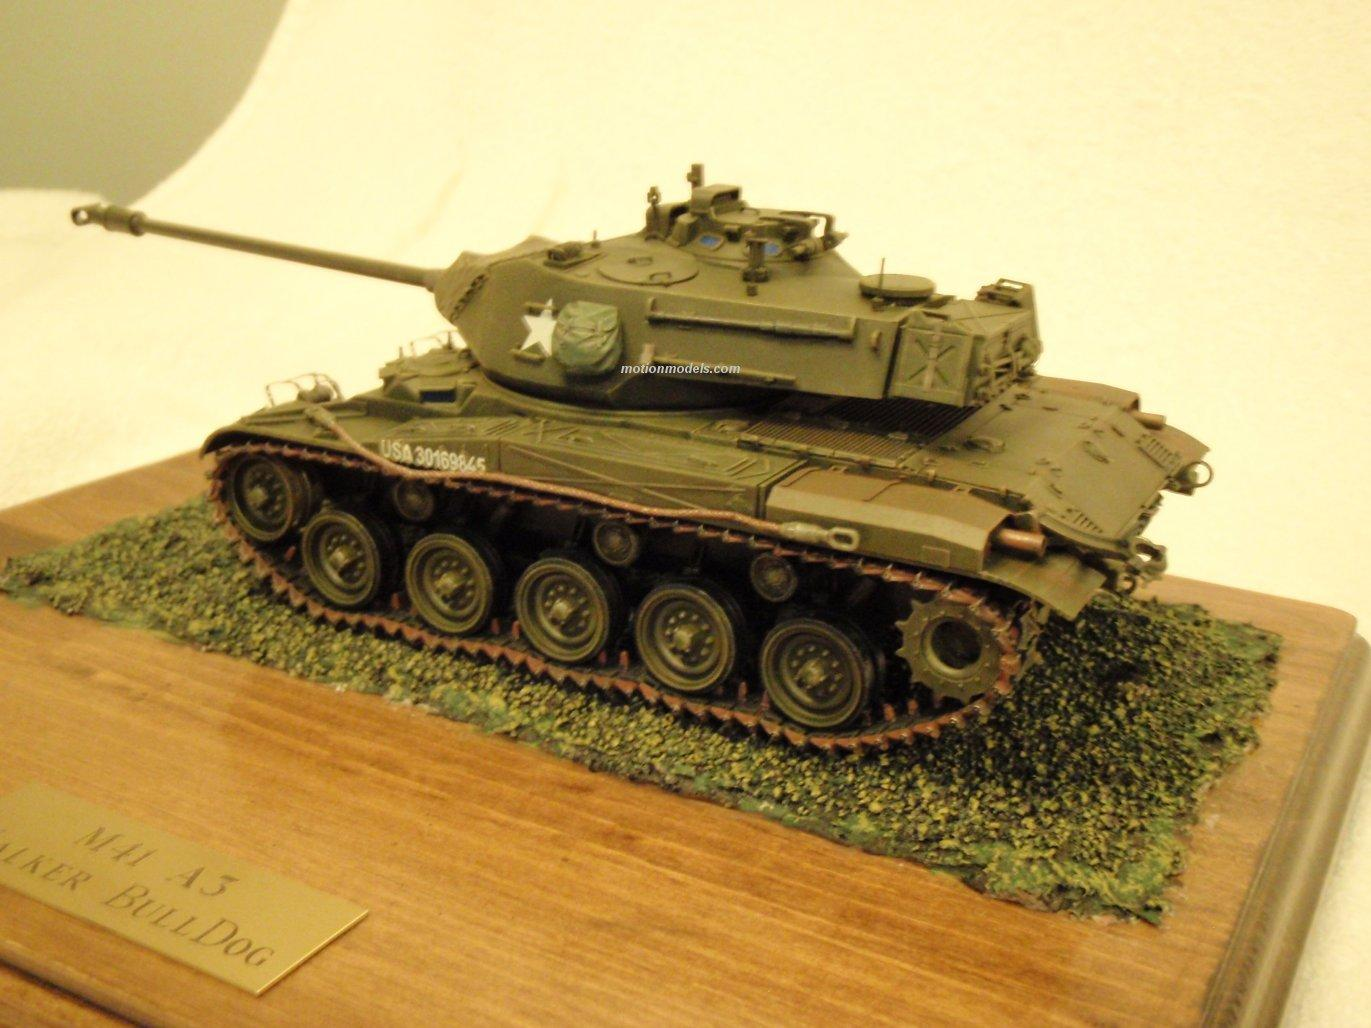 Motion Models - M41A3 Walker Bulldog Tank